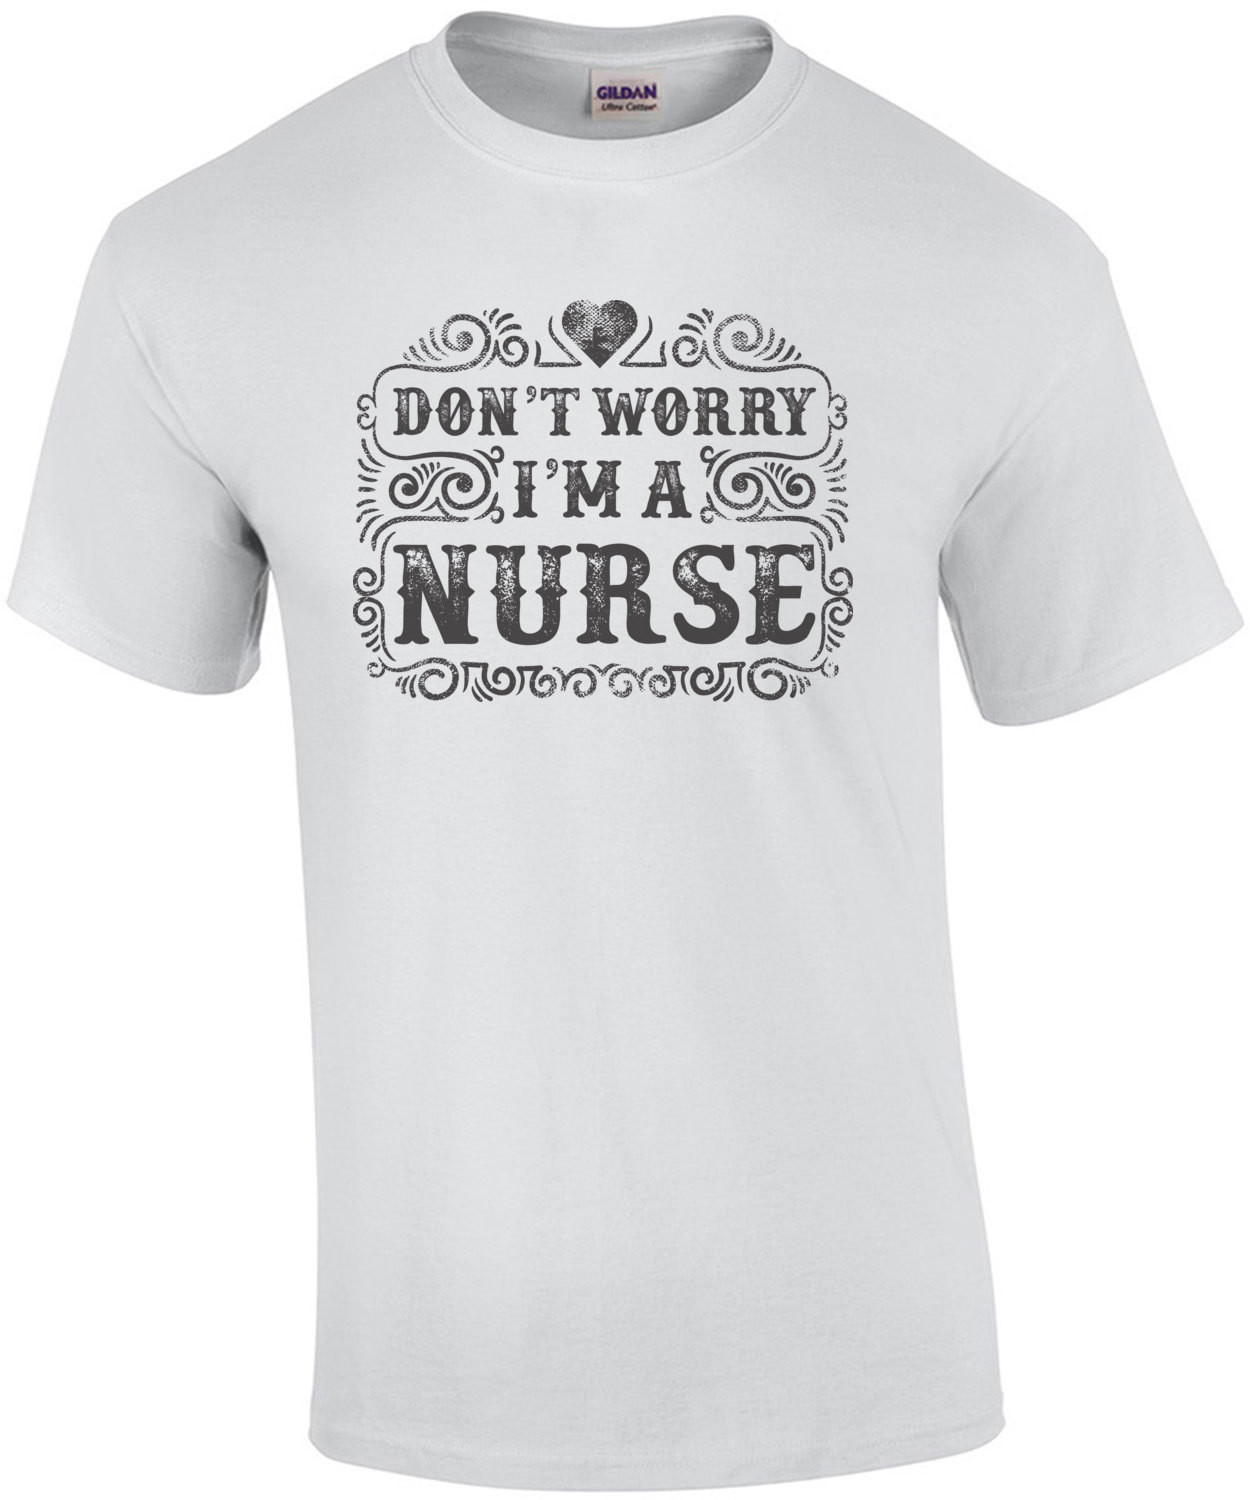 Dont Worry I'm A Nurse T-Shirt